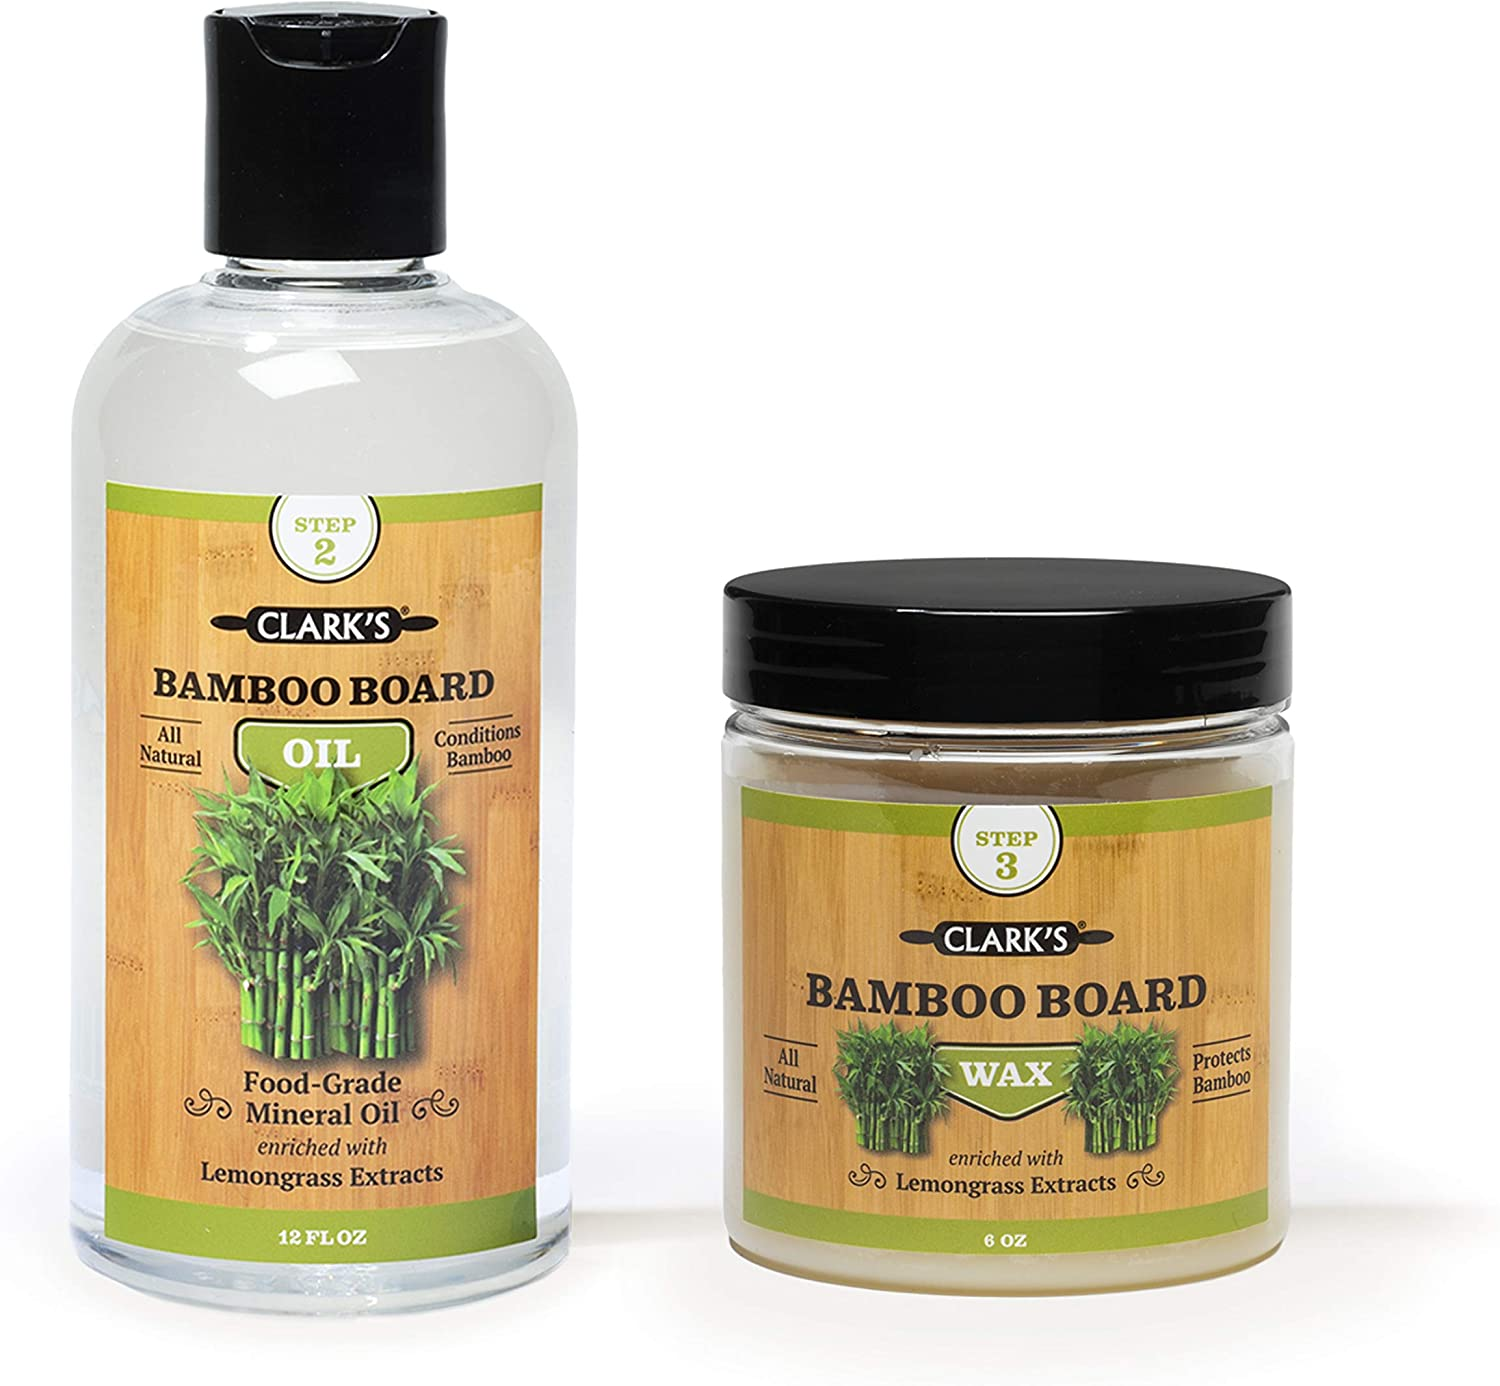 Bamboo Board Oil Wax Cash special price 2 Bottle CLAR Includes by Set CLARK'S - At the price of surprise